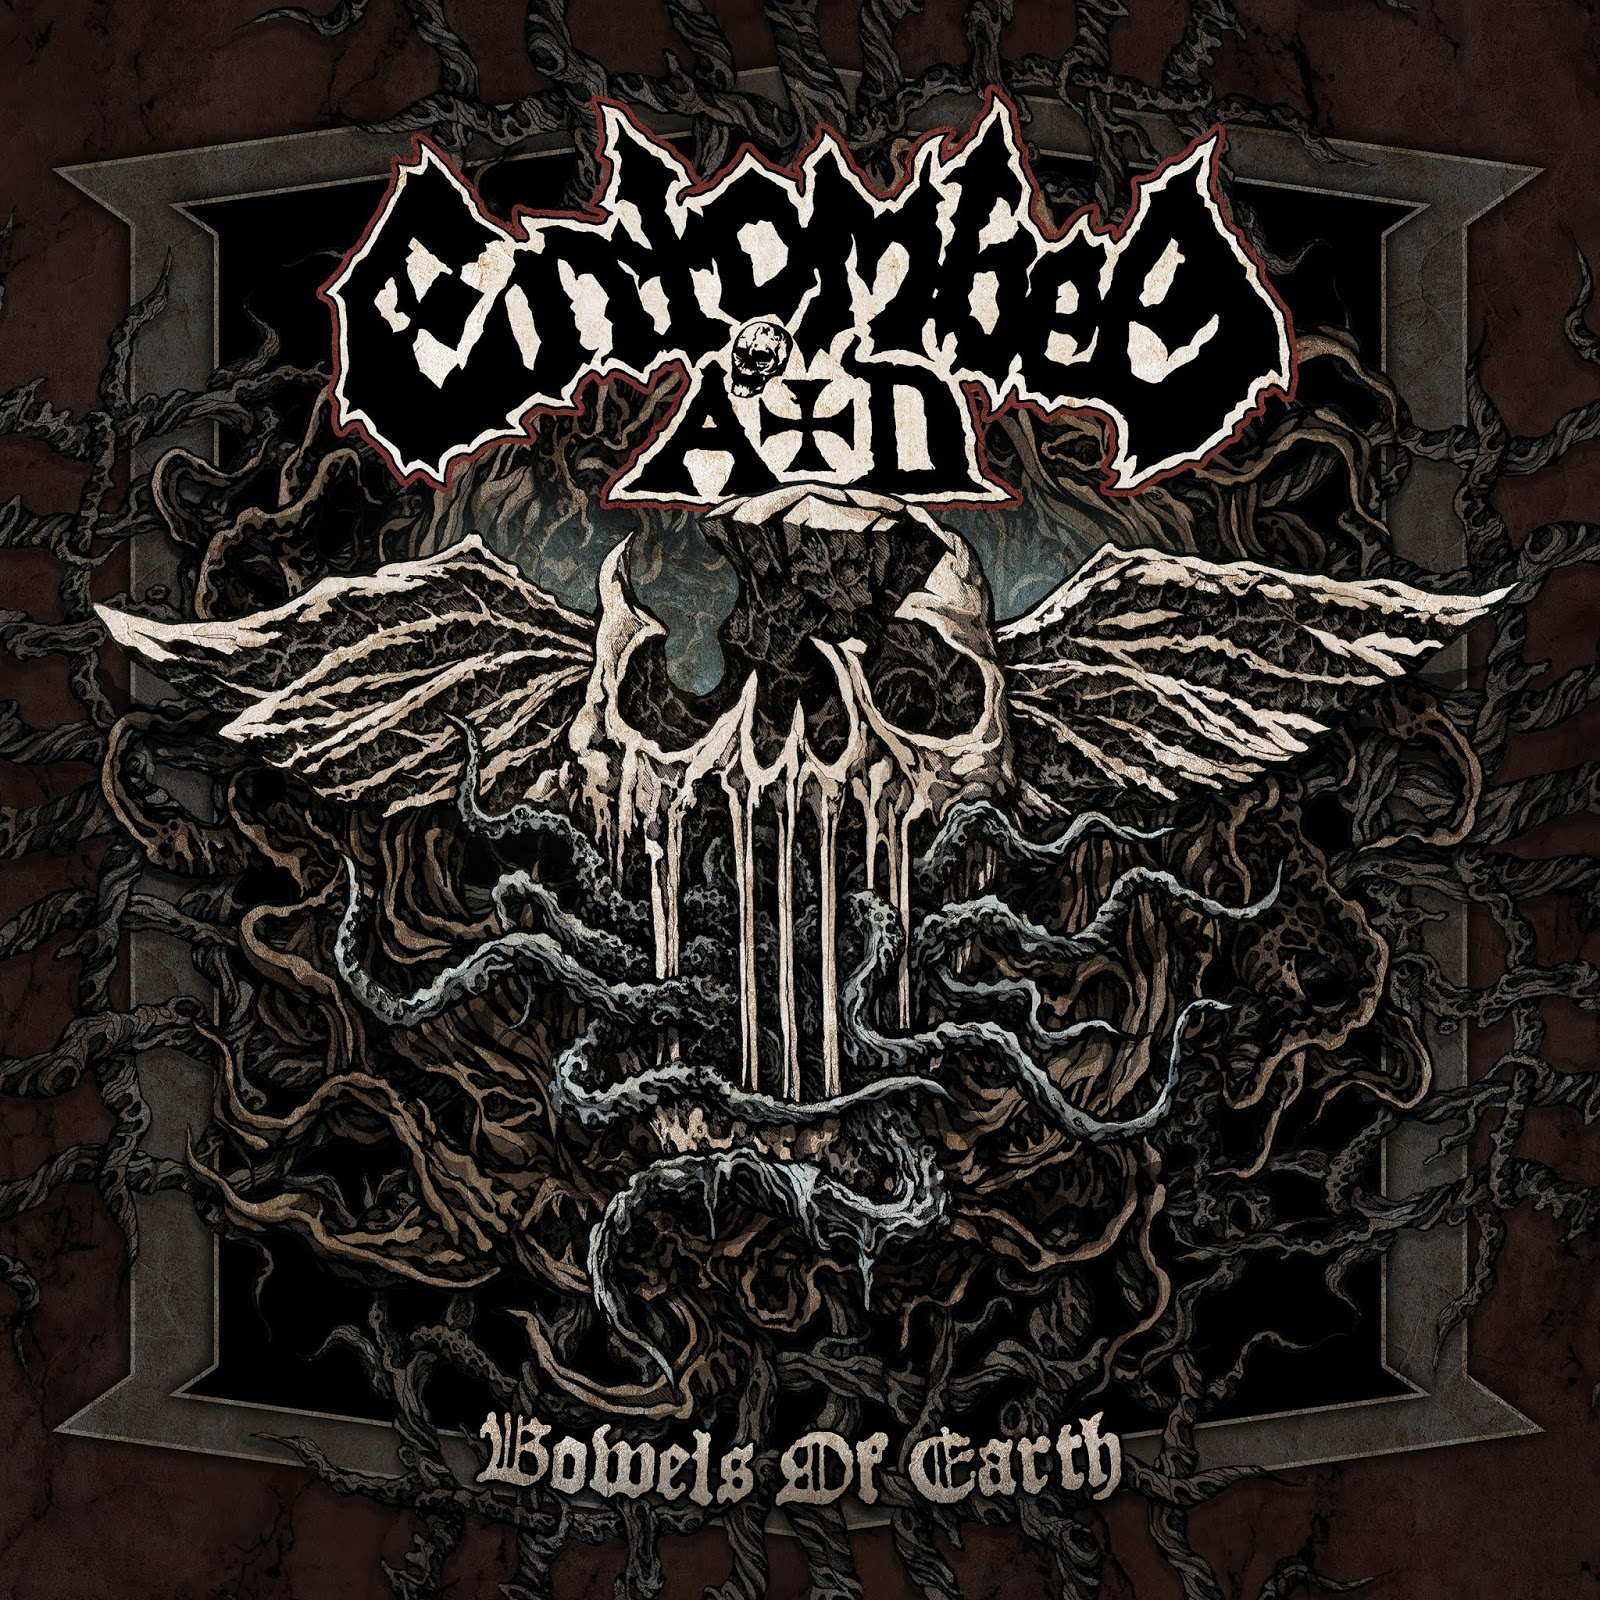 Entombed A.D.Bowels OF Earth